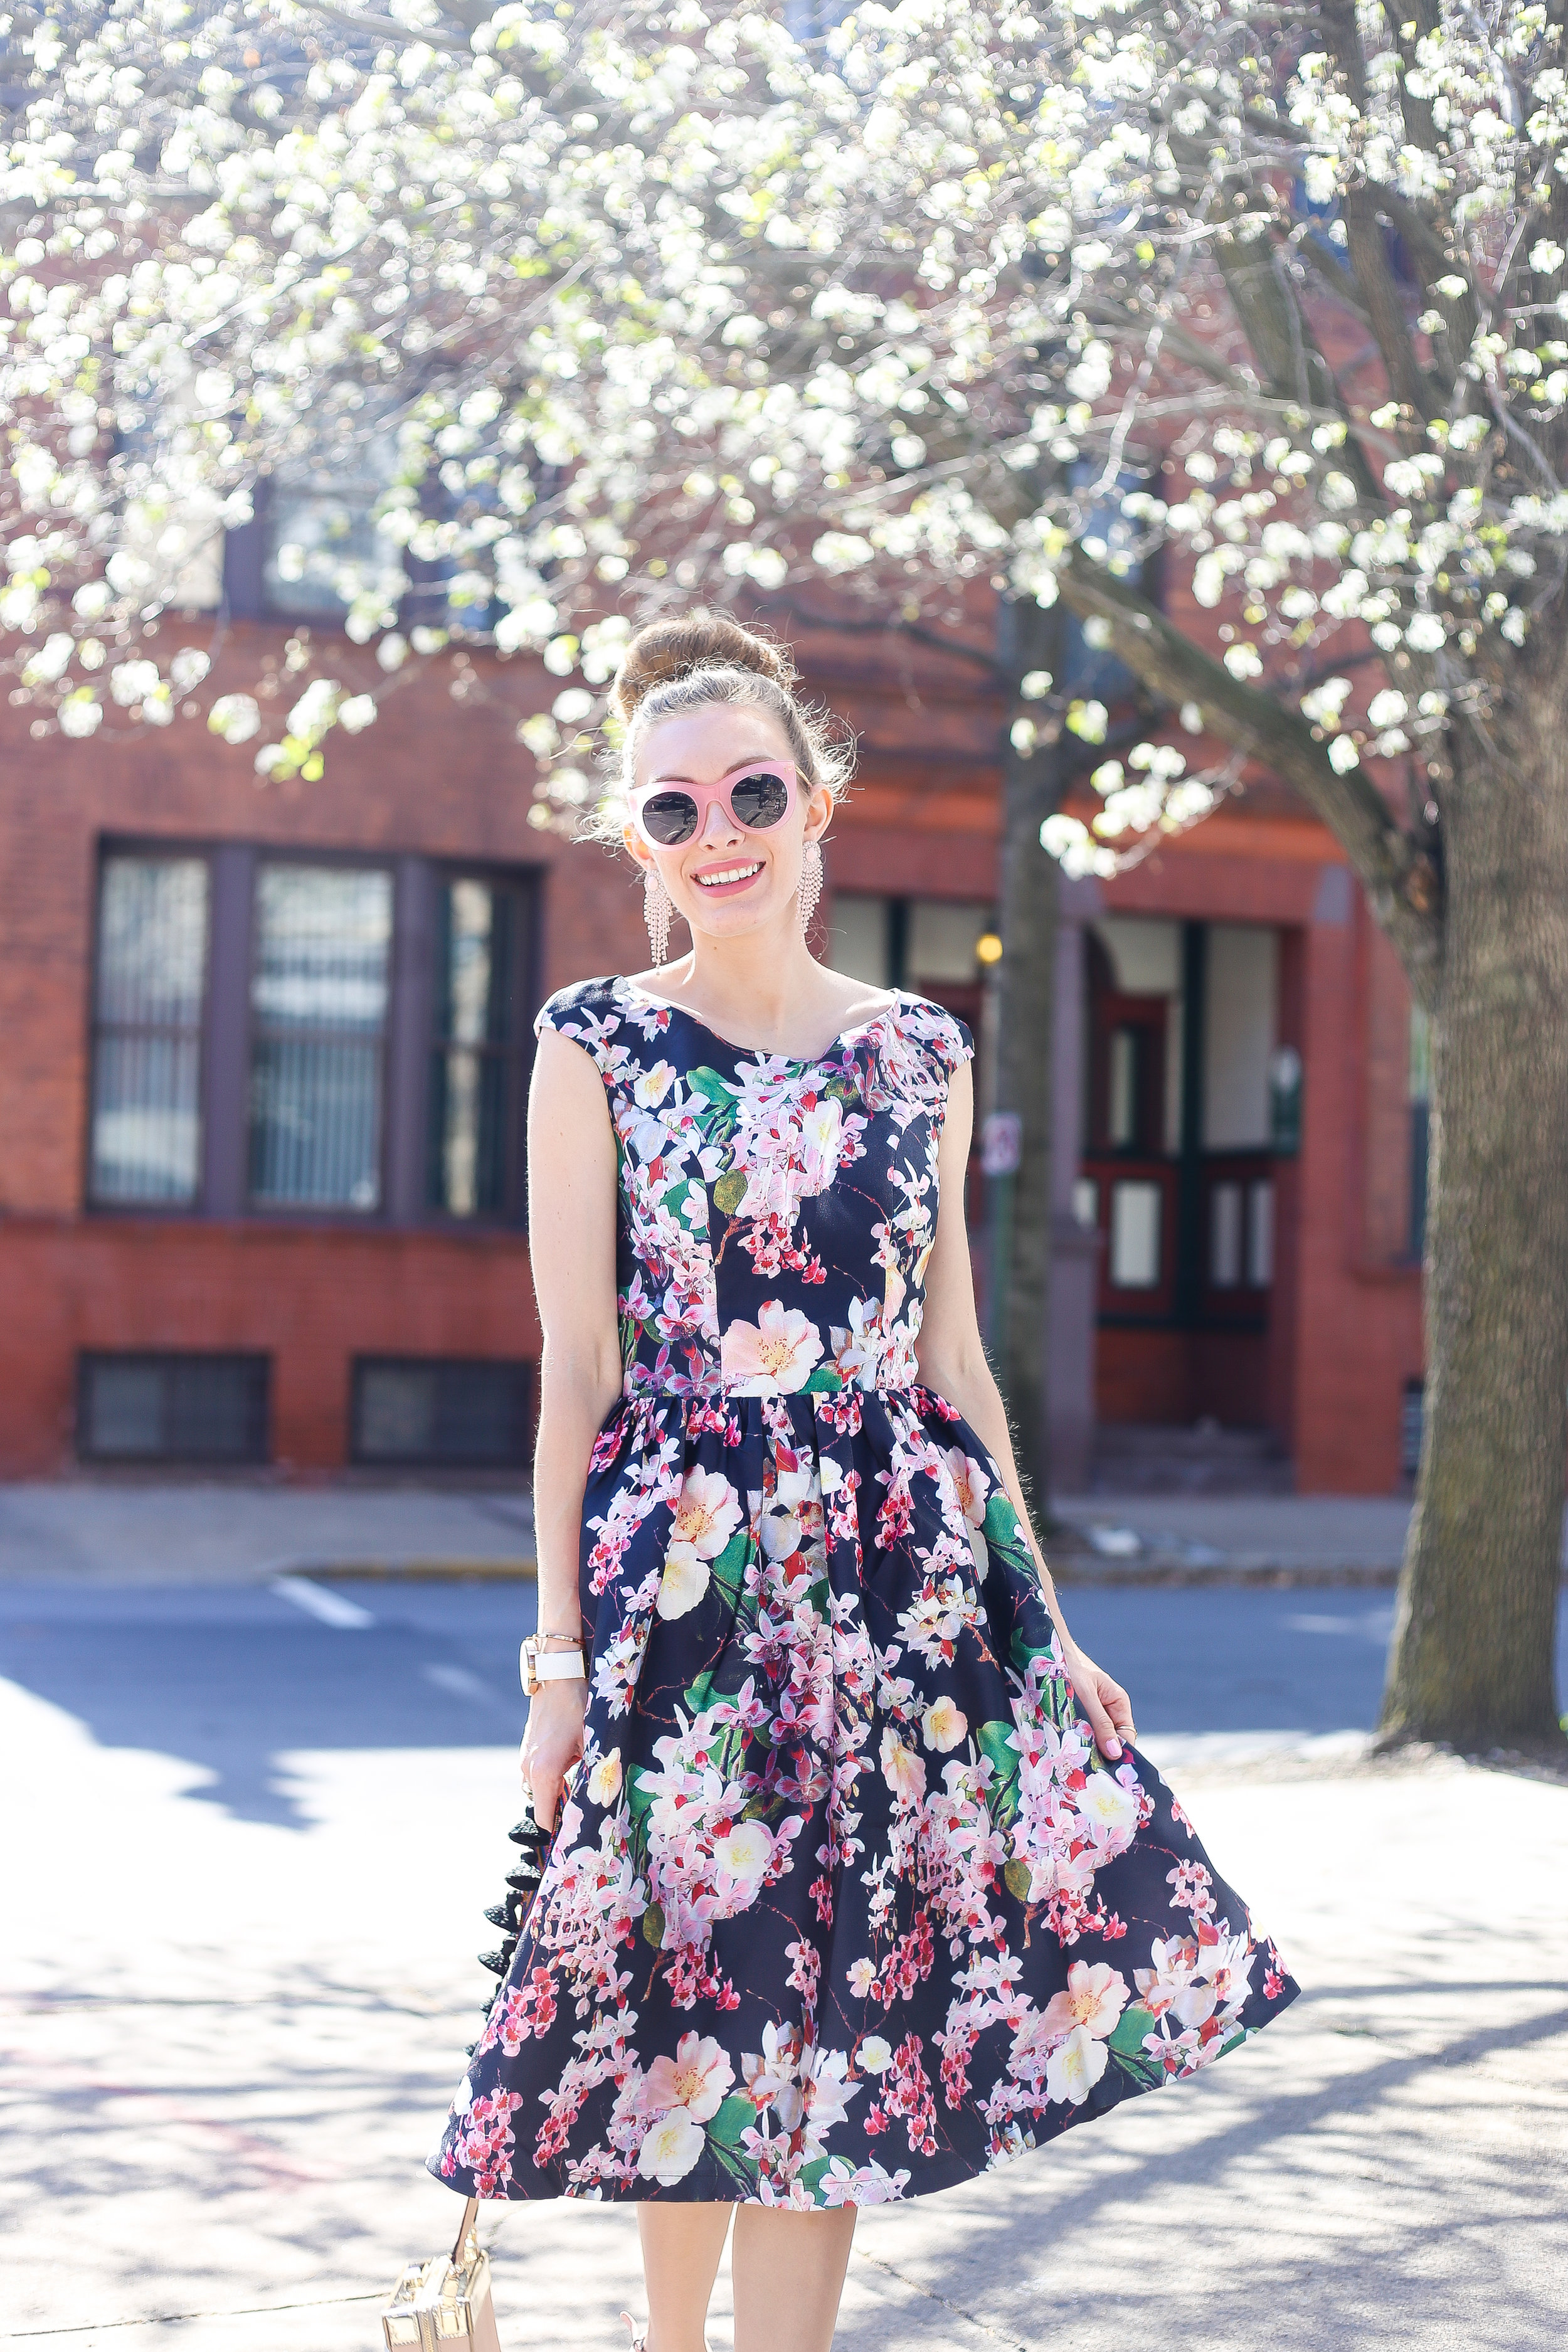 Dark Florals In Spring- Enchanting Elegance